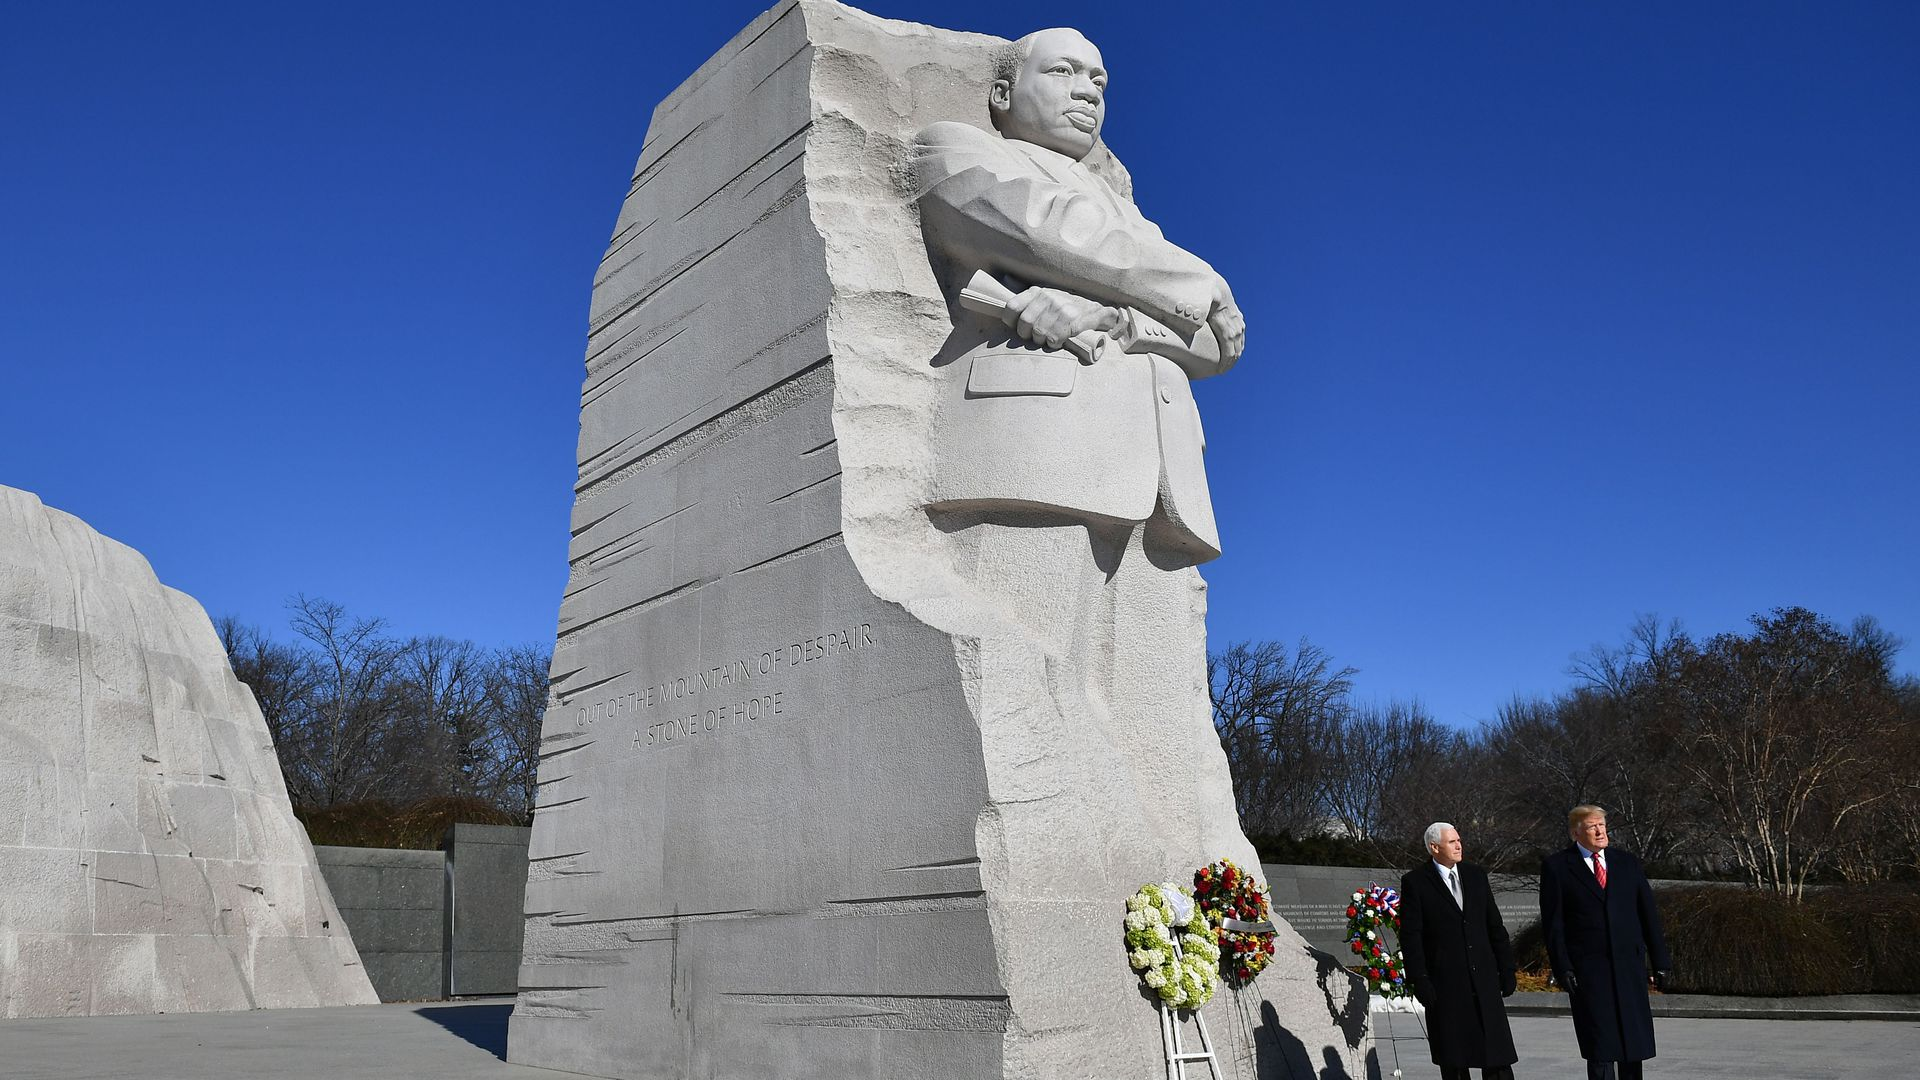 President Trump and Vice President Mike Pence stand in front of the Martin Luther King statue at the King memorial